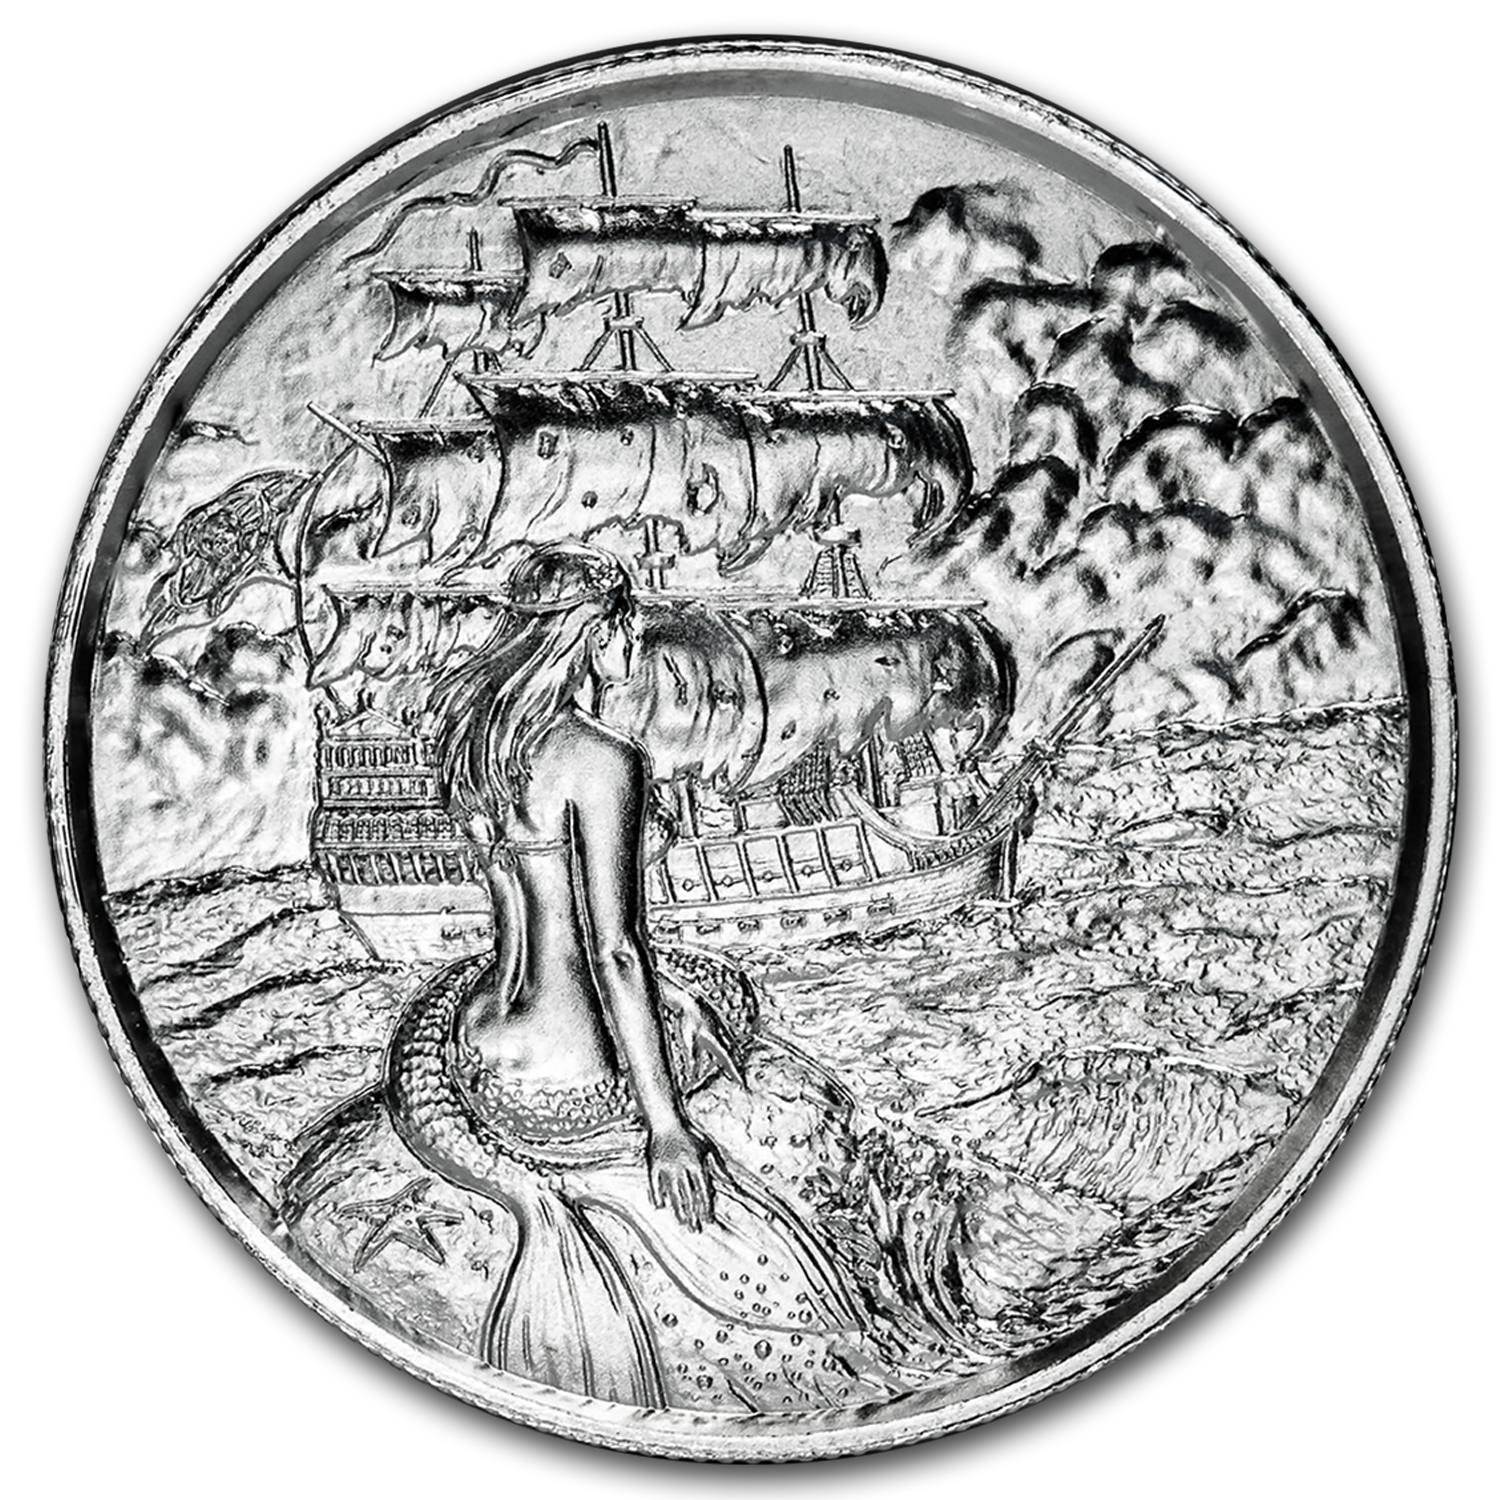 2 oz Silver Round - The Siren (Ultra High Relief)